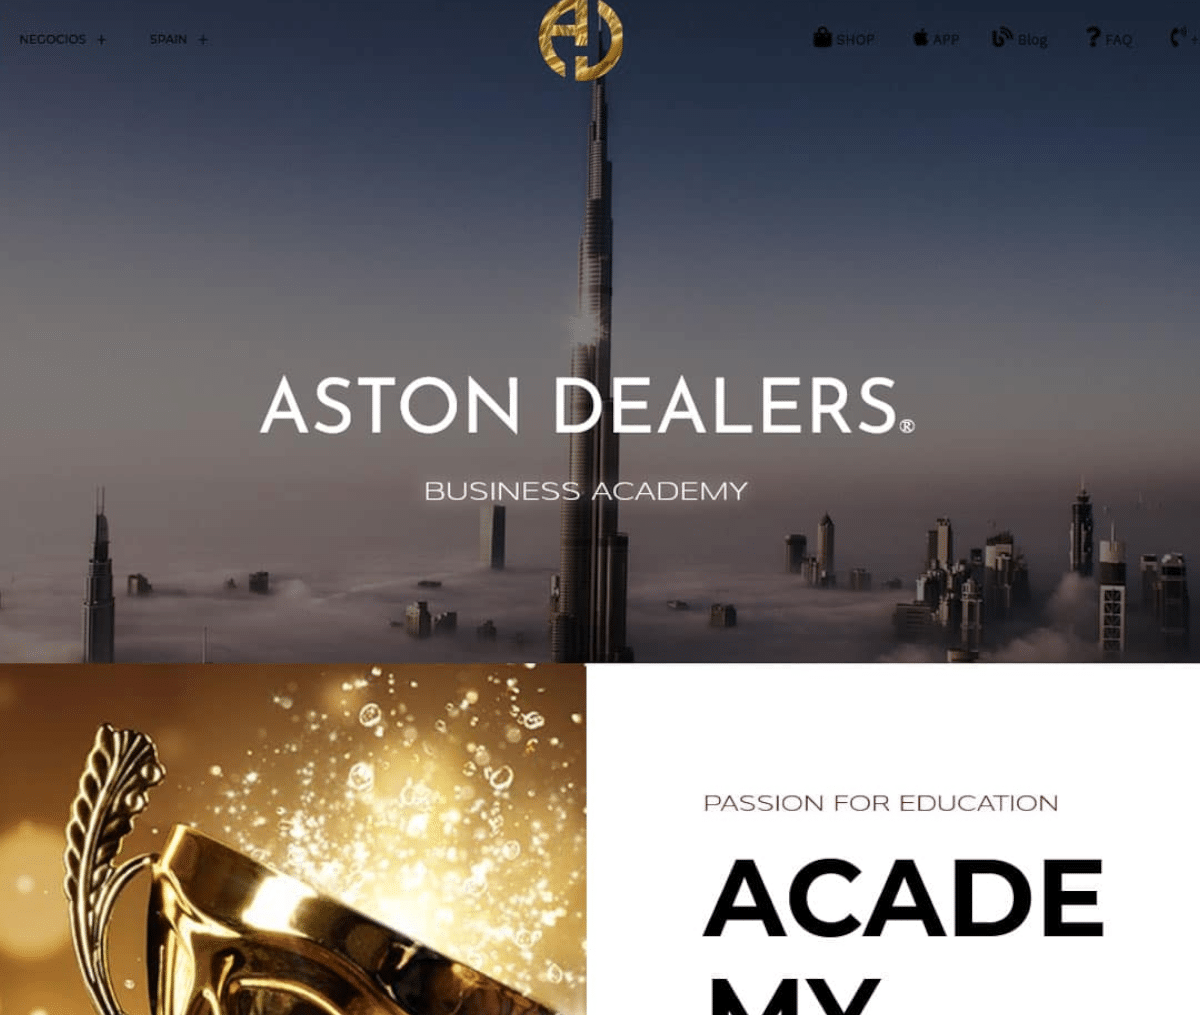 Página web de Aston Dealers